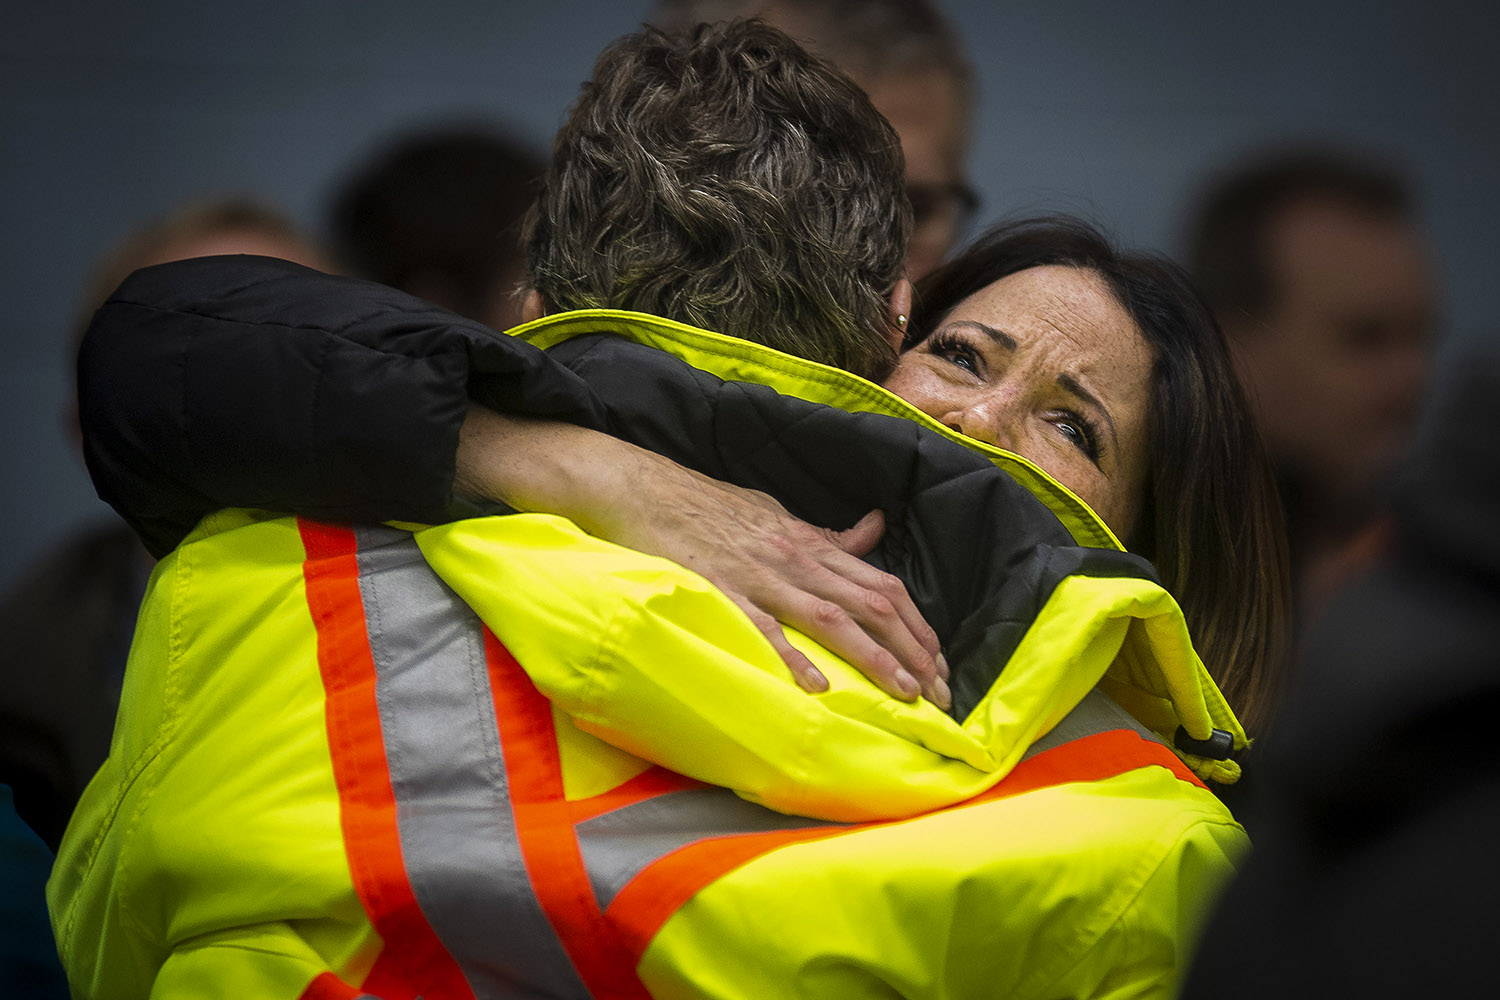 Lianna Hall embraces a colleague as General Motors workers gather at a union meeting in Oshawa after the automaker announced its plans to close the plant, November 26, 2018.